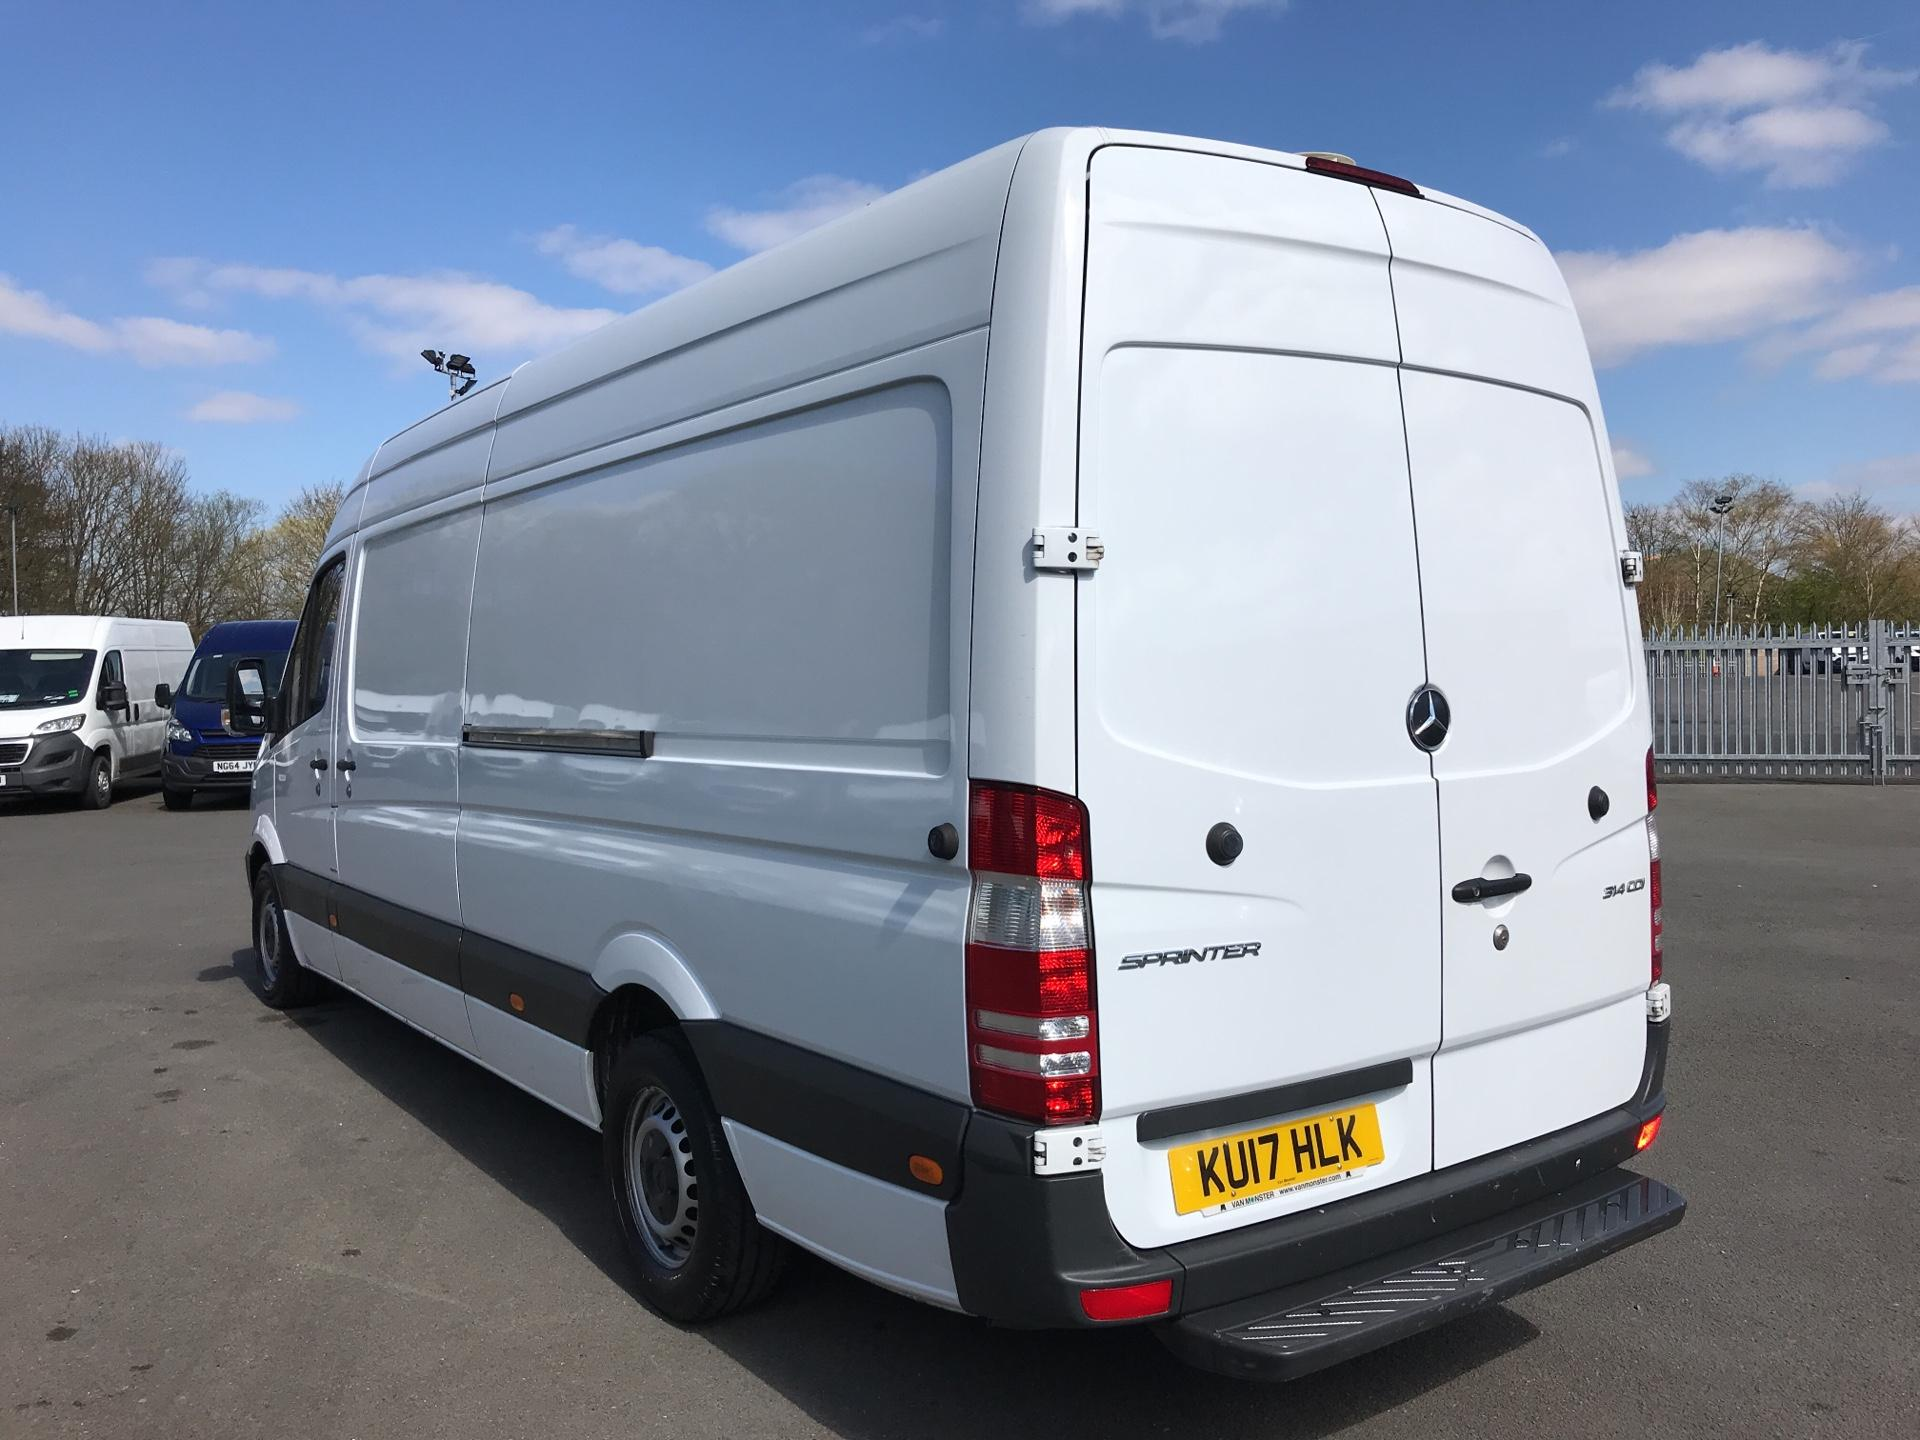 2017 Mercedes-Benz Sprinter  314CDI LWB HIGH ROOF 140PS EURO 6 (KU17HLK) Thumbnail 5